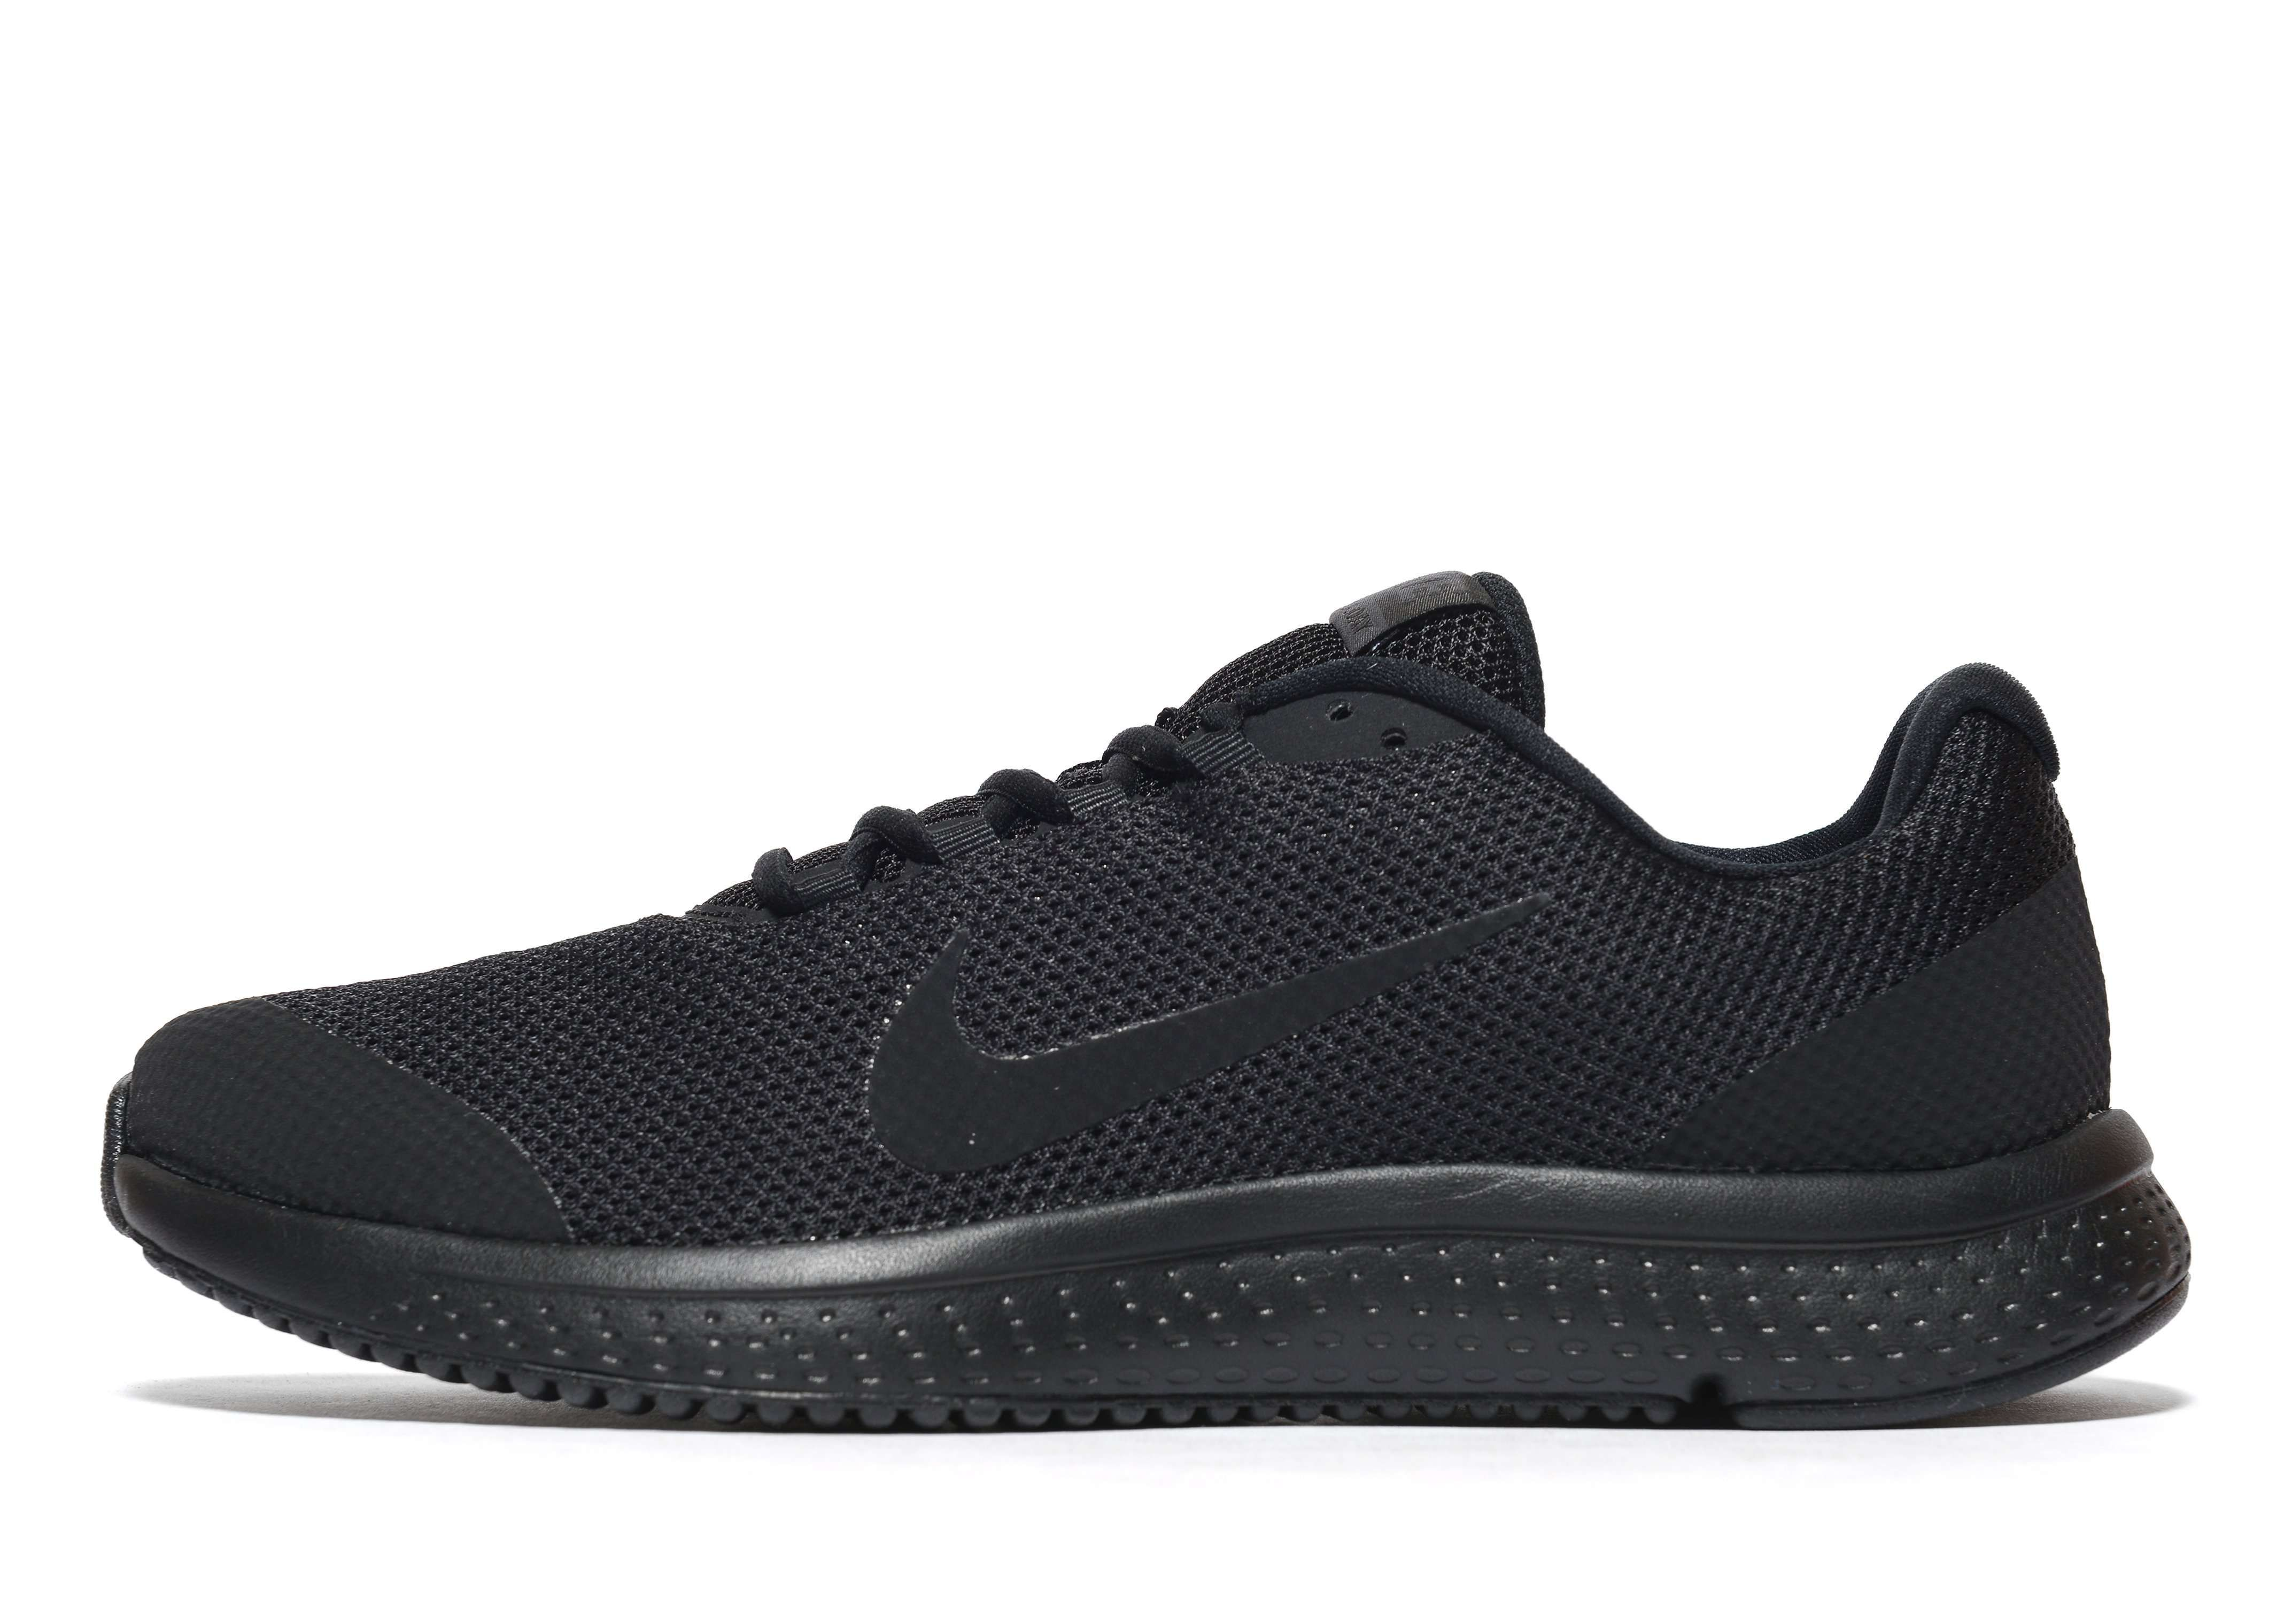 premium selection e042c 35c8e Nike Run All Day - Shop online for Nike Run All Day with JD Sports,